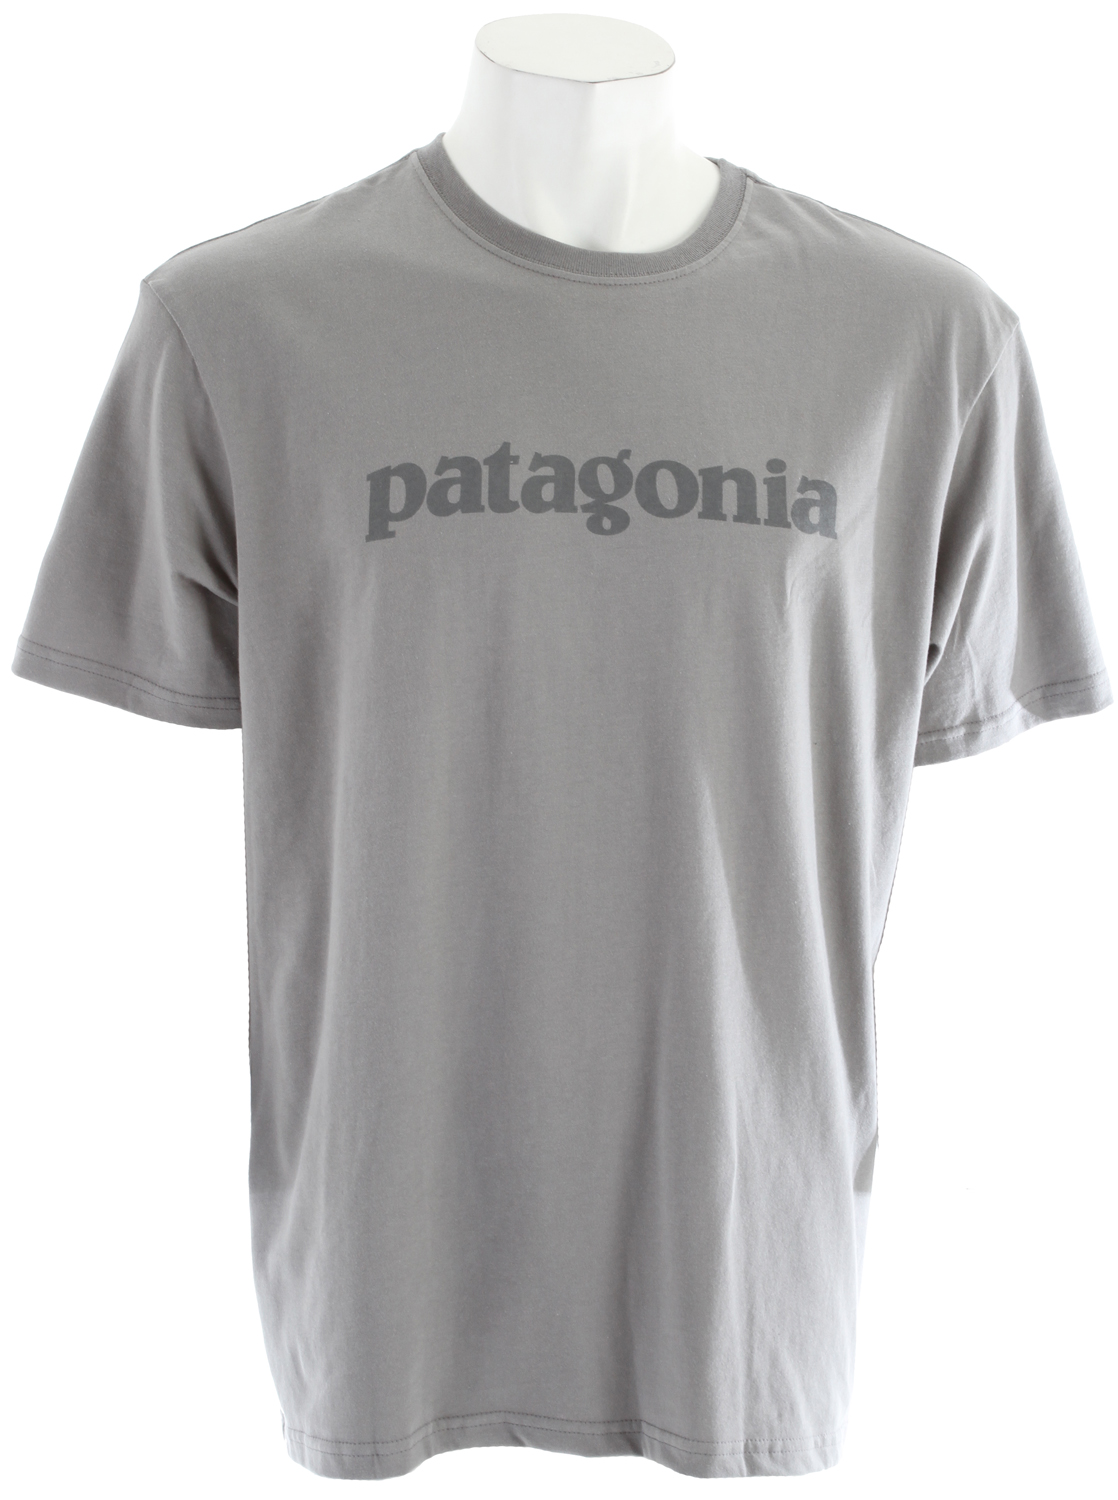 Plain and simple sums up this 100% organic cotton T-shirt. The Text Logo T-Shirt tells the story in a word. Printed with PVC- and phthalate-free inks on our ultrasoft, ringspun 100% organic cotton jersey. Durable, taped shoulder seams minimize chafing.Key Features of the Patagonia Text Logo T-Shirt: Screen-print inks are PVC- and phthalate-free Taped shoulder seams for comfort 20 singles supersoft ringspun organic cotton Artist: Patagonia Logowear Crew 5.4-oz 100% organic cotton 195 g (6.9 oz) Made in USA. - $24.95